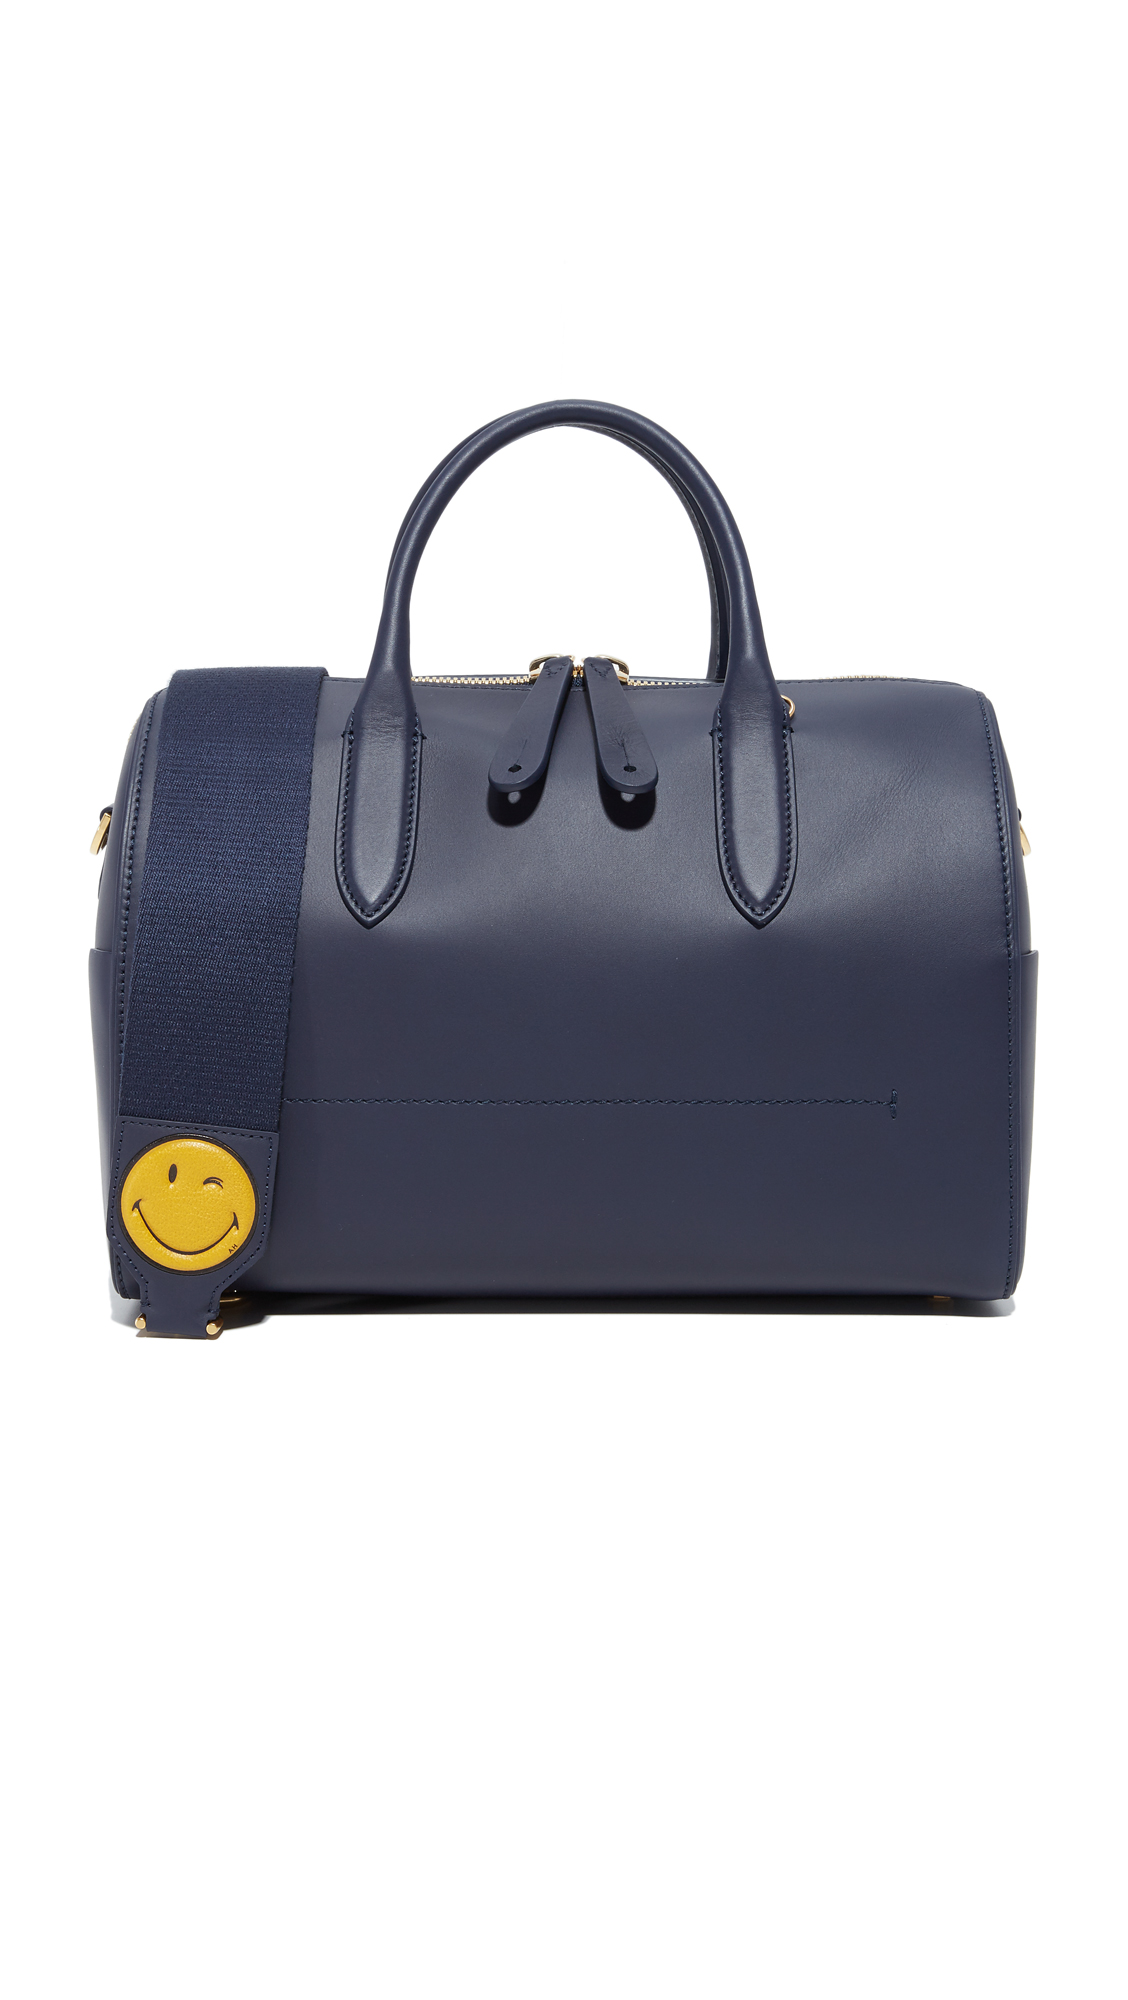 Anya Hindmarch Vere Barrel Handbag - Indigo